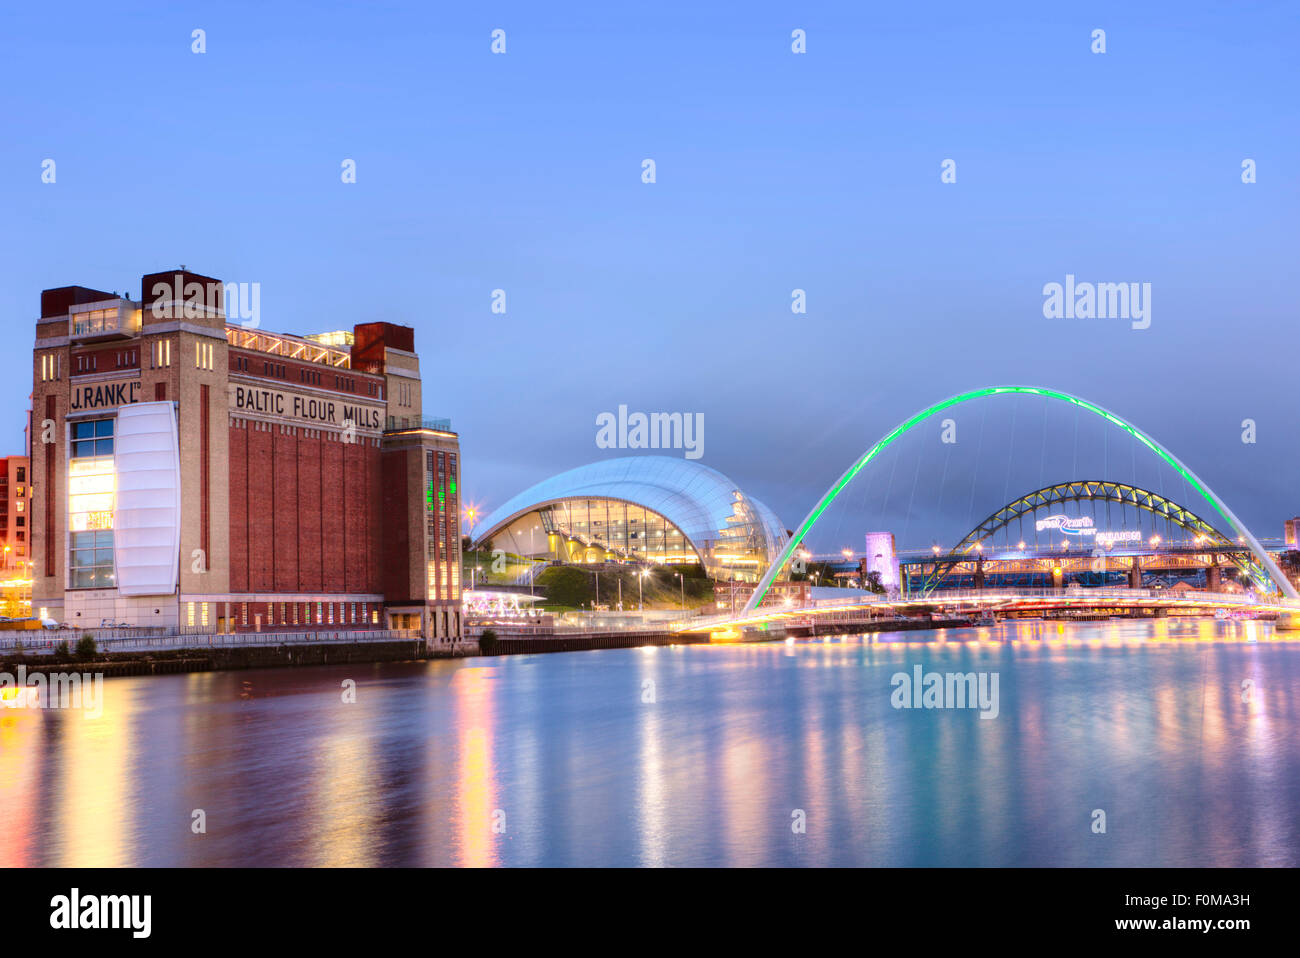 The BALTIC Centre for Contemporary Art, Millennium Bridge, Tyne Bridge and Sage Gateshead, Tyne and Wear, UK - Stock Image